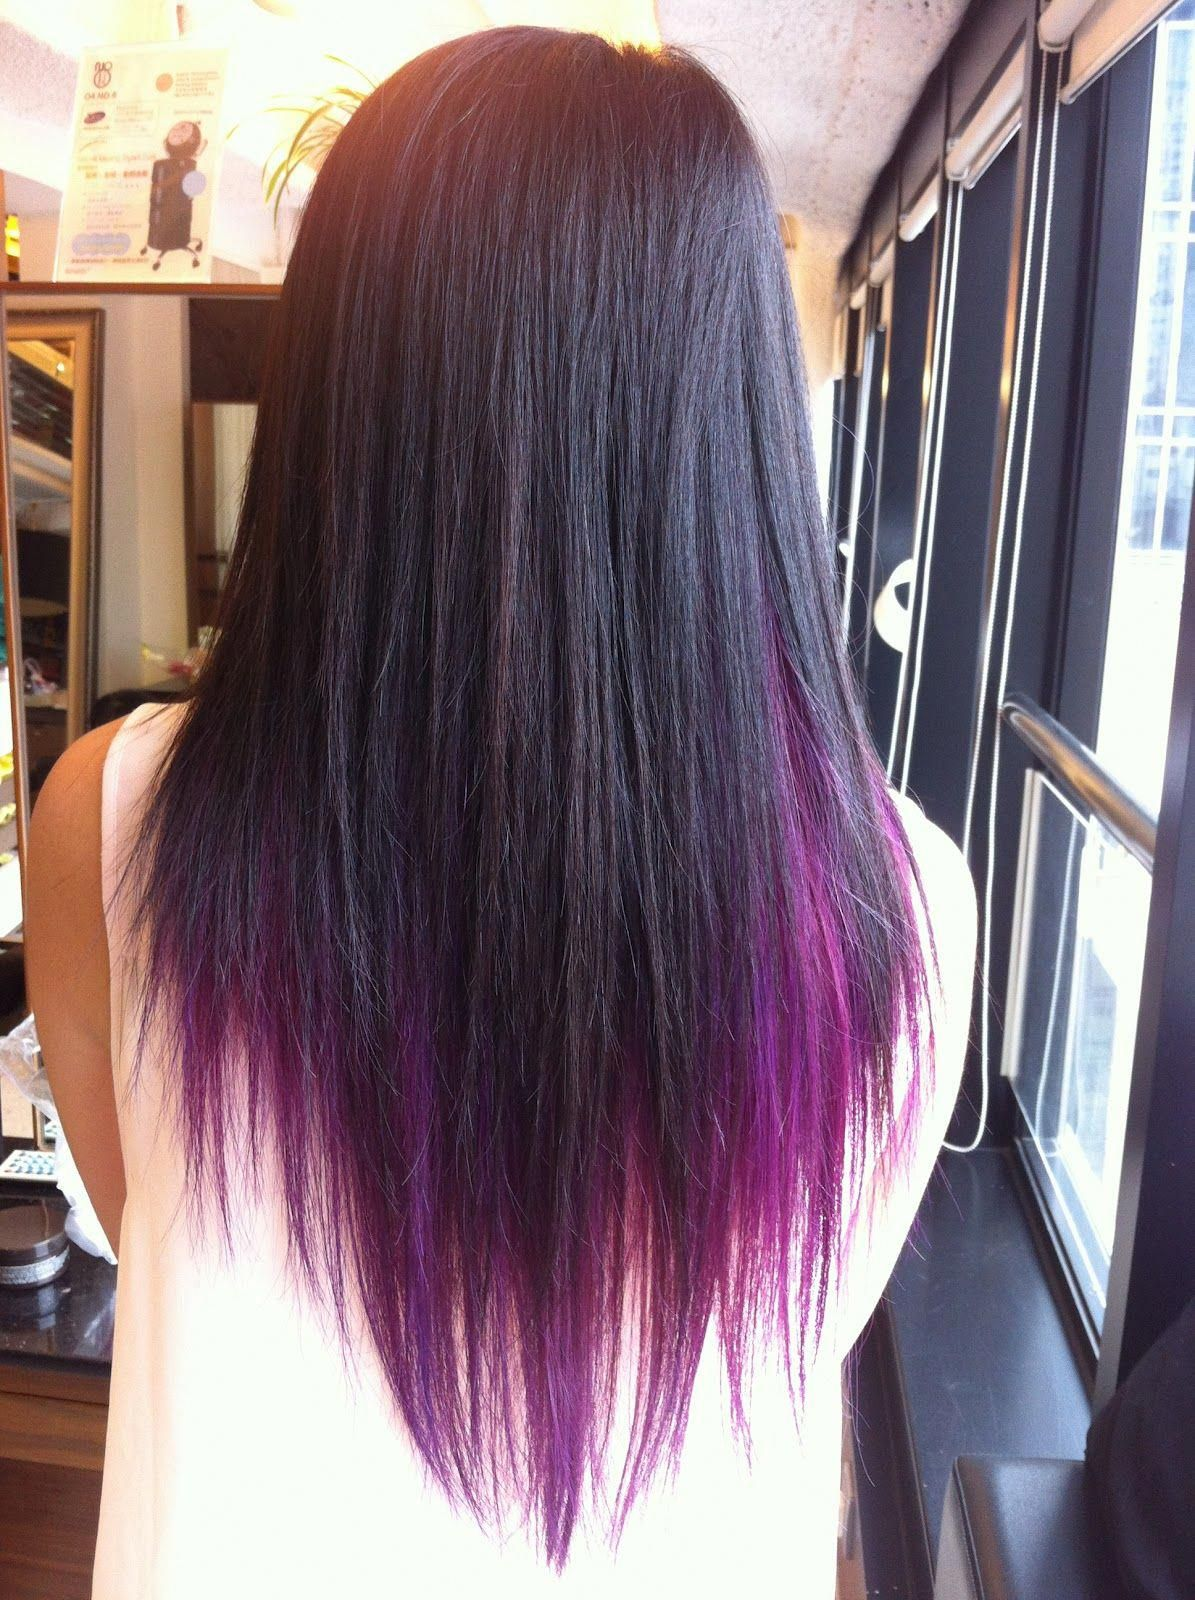 Purple Under Layer Haircolorlight Purple Underneath Hair Hair Styles Brown Layered Hair